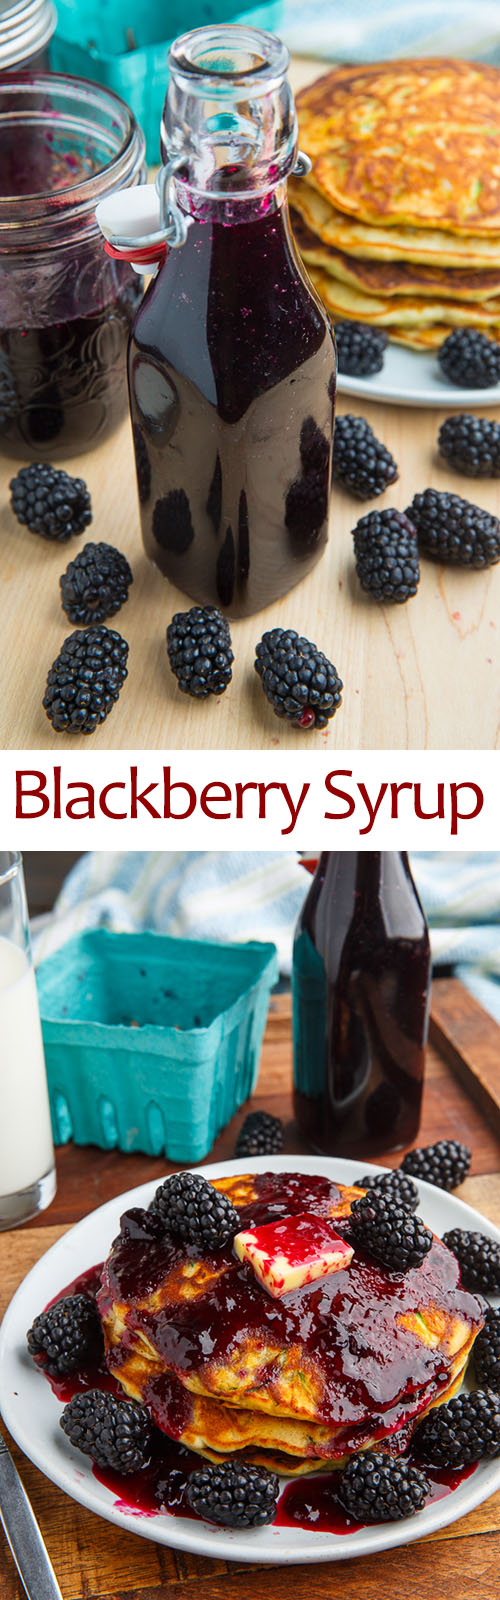 Blackberry Syrup